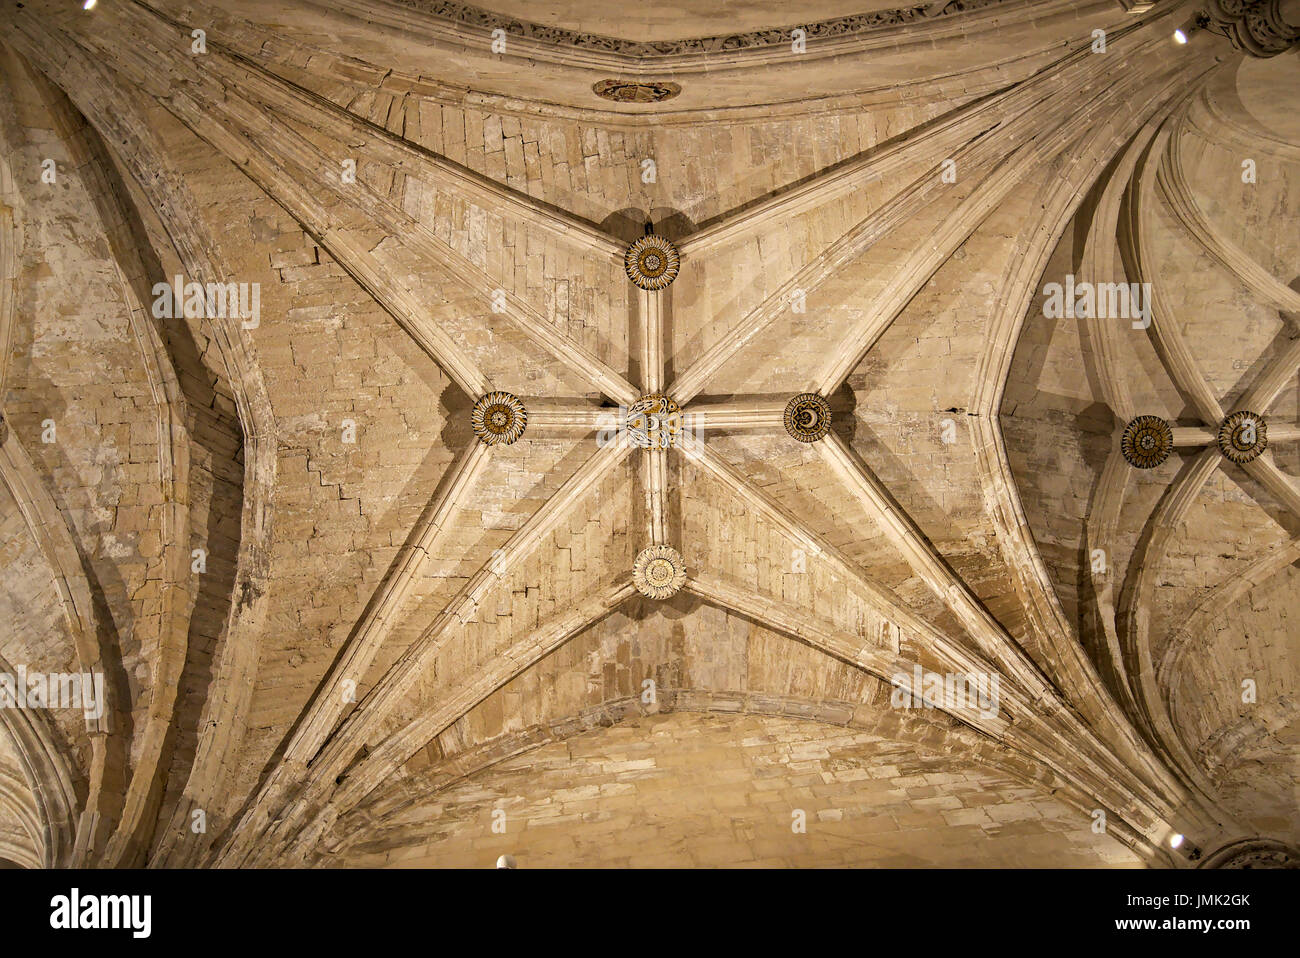 Image of the central cross of the ribbed vault in the central nave of Cuenca cathedral, Castilla La Mancha province, Spain. - Stock Image